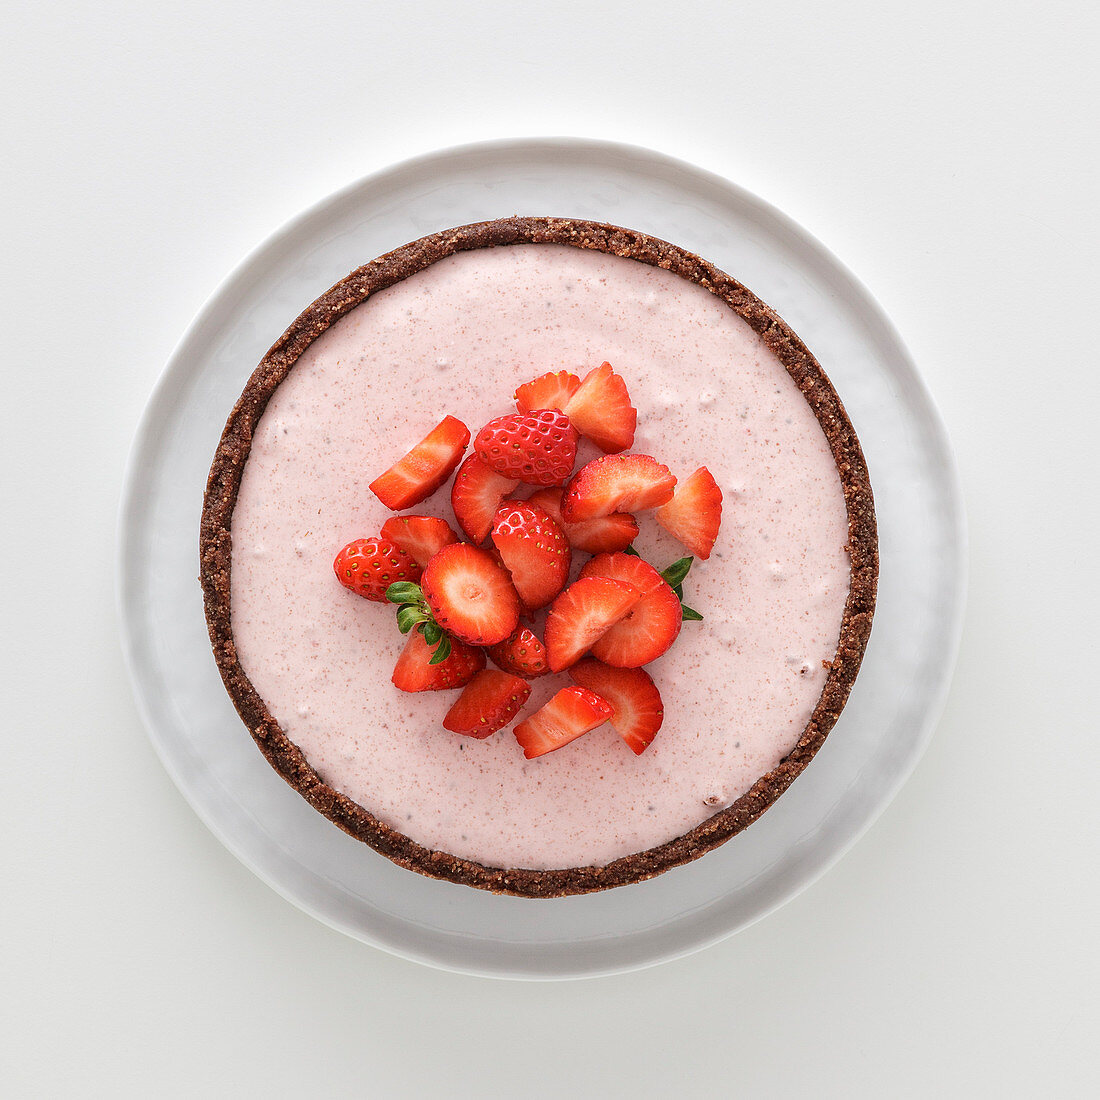 Strawberry cheesecake with a chocolate base